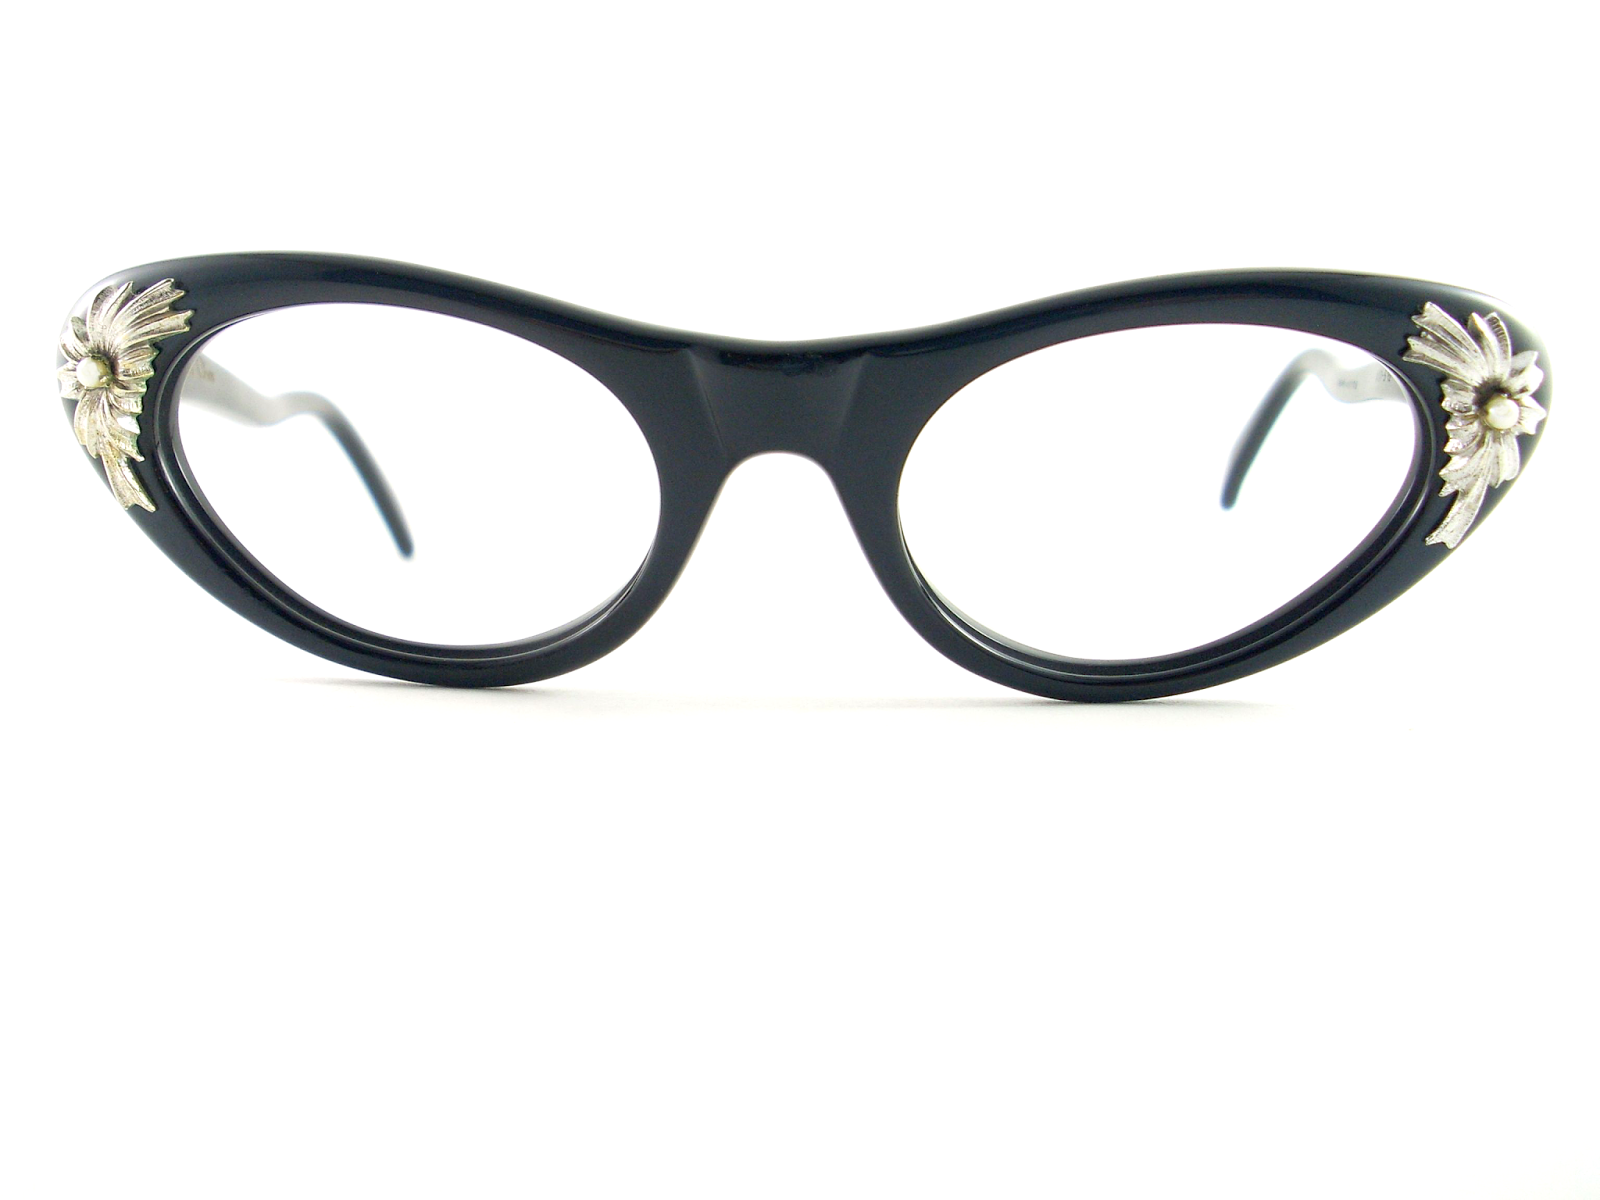 Cat Eye Frame Eye Glasses : Vintage Eyeglasses Frames Eyewear Sunglasses 50S: January 2015